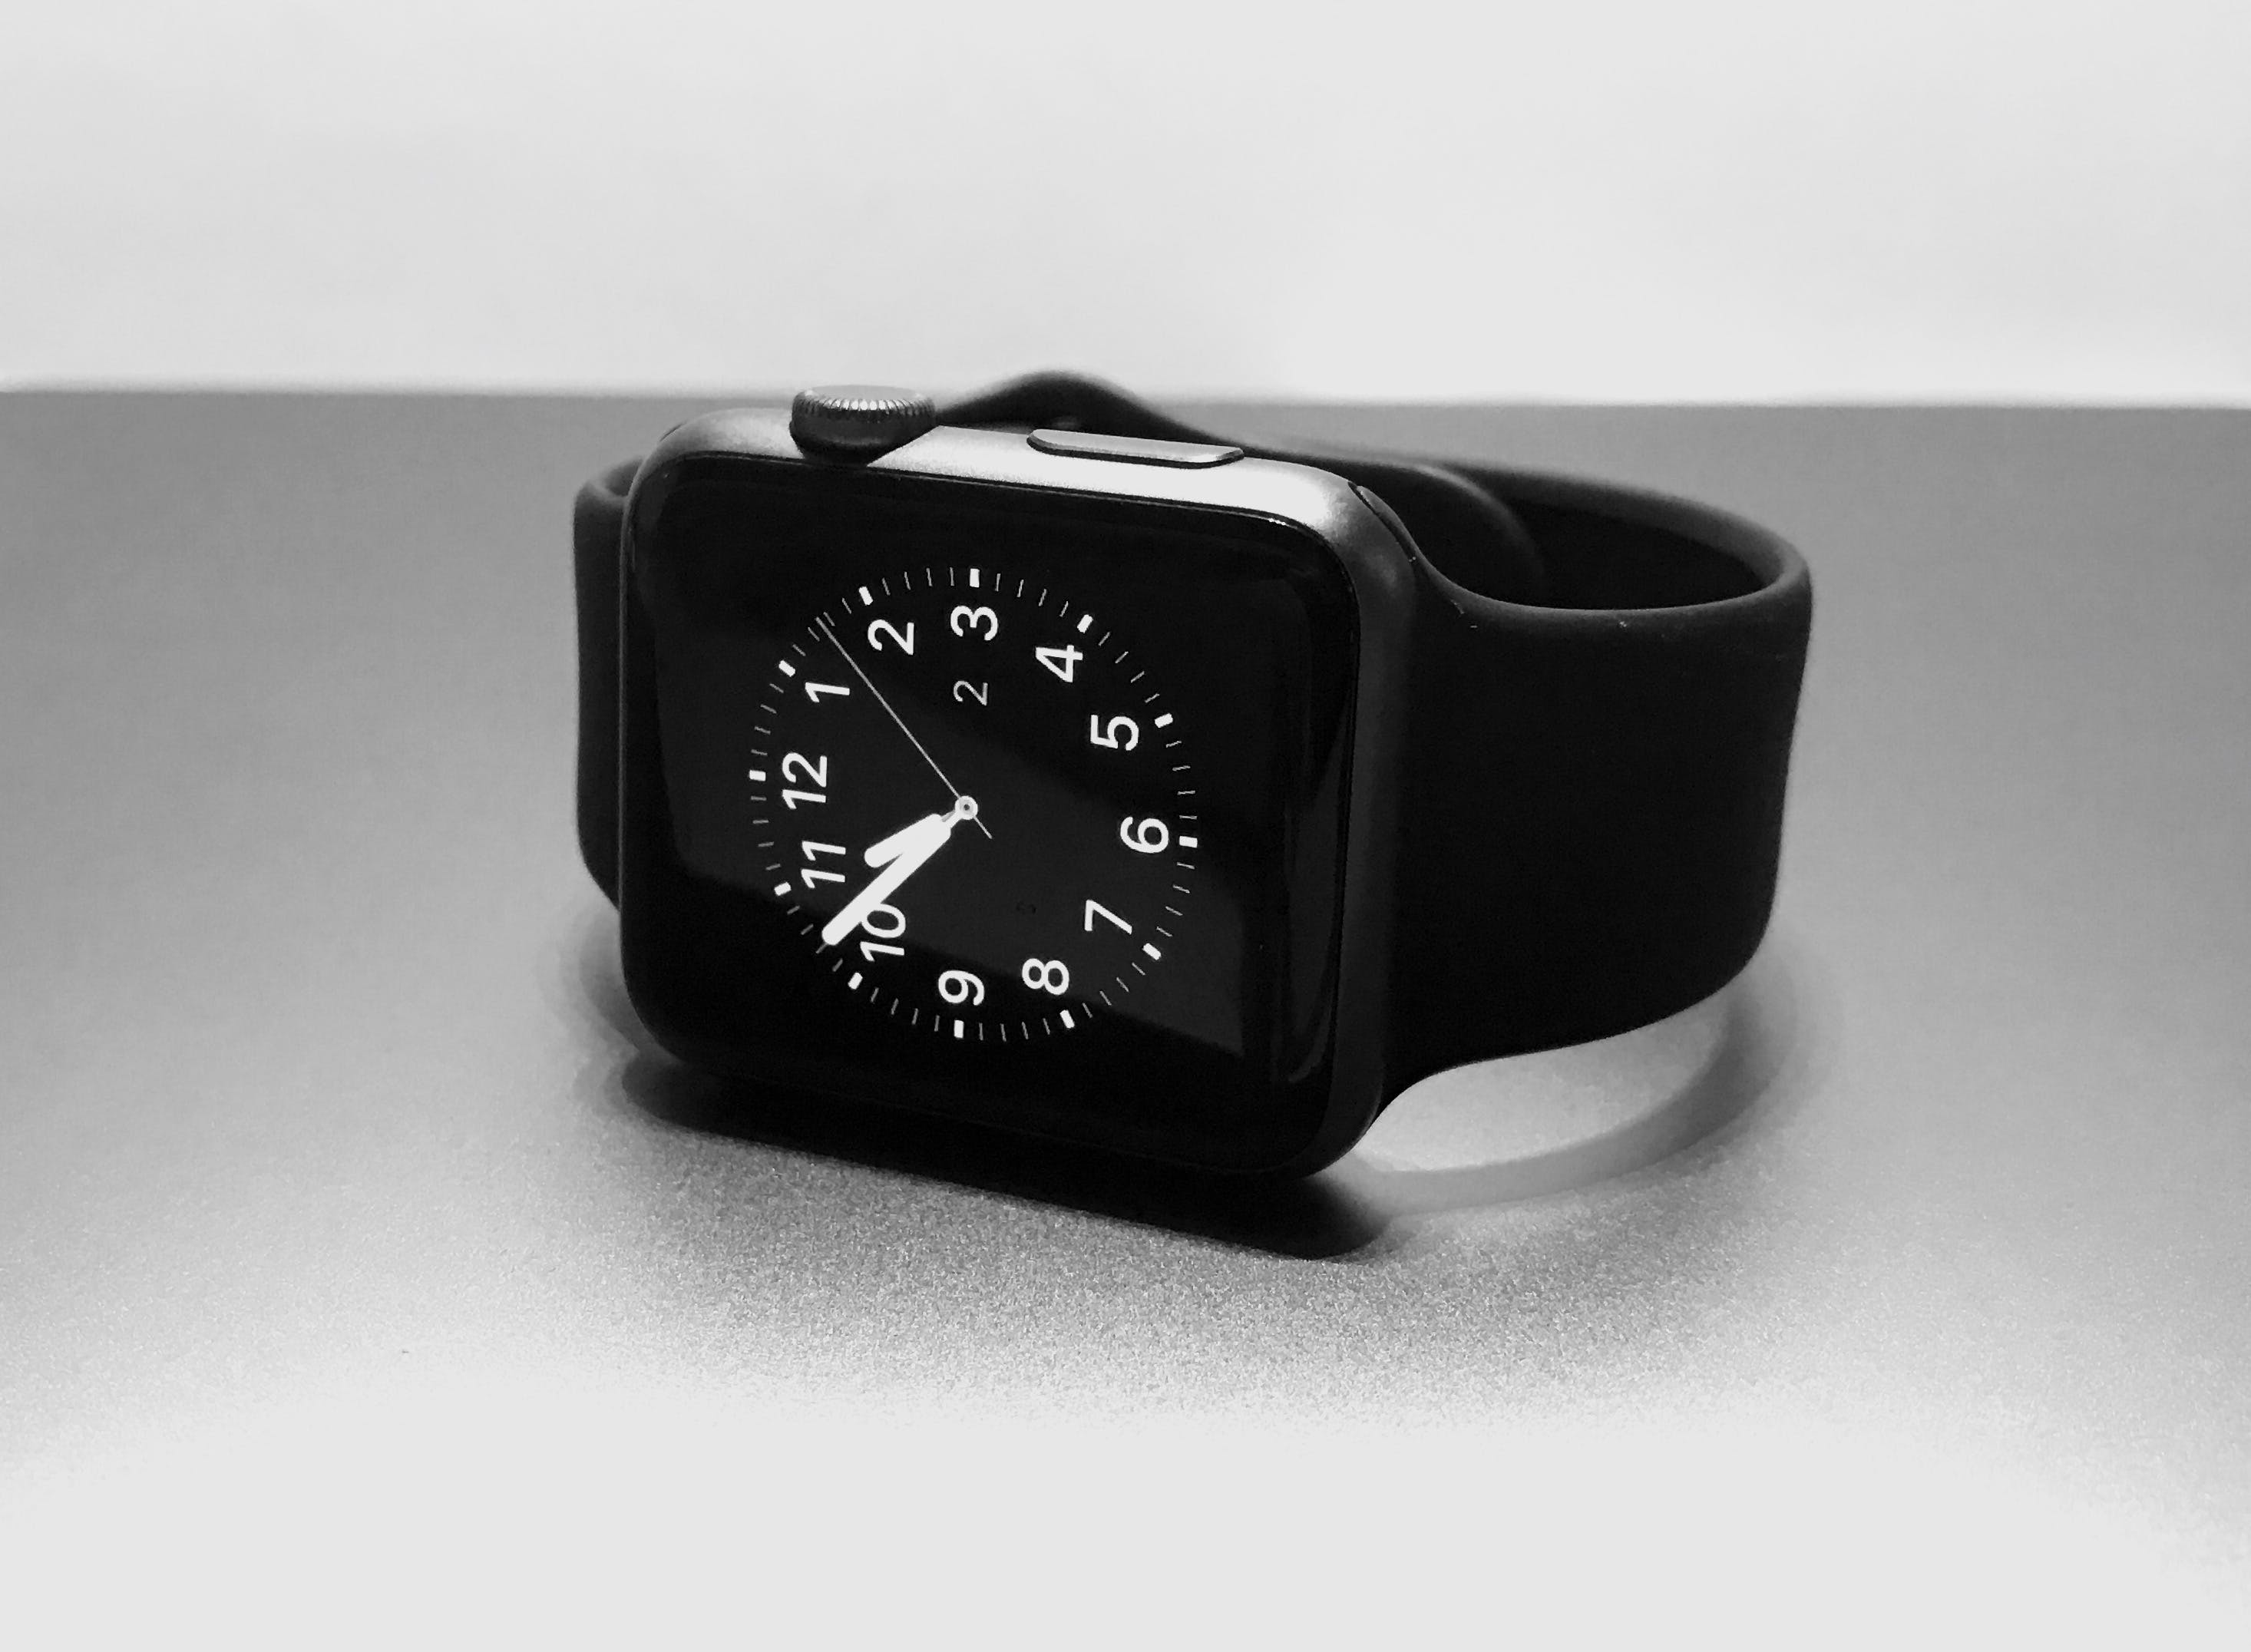 Apple Watch at 10:52